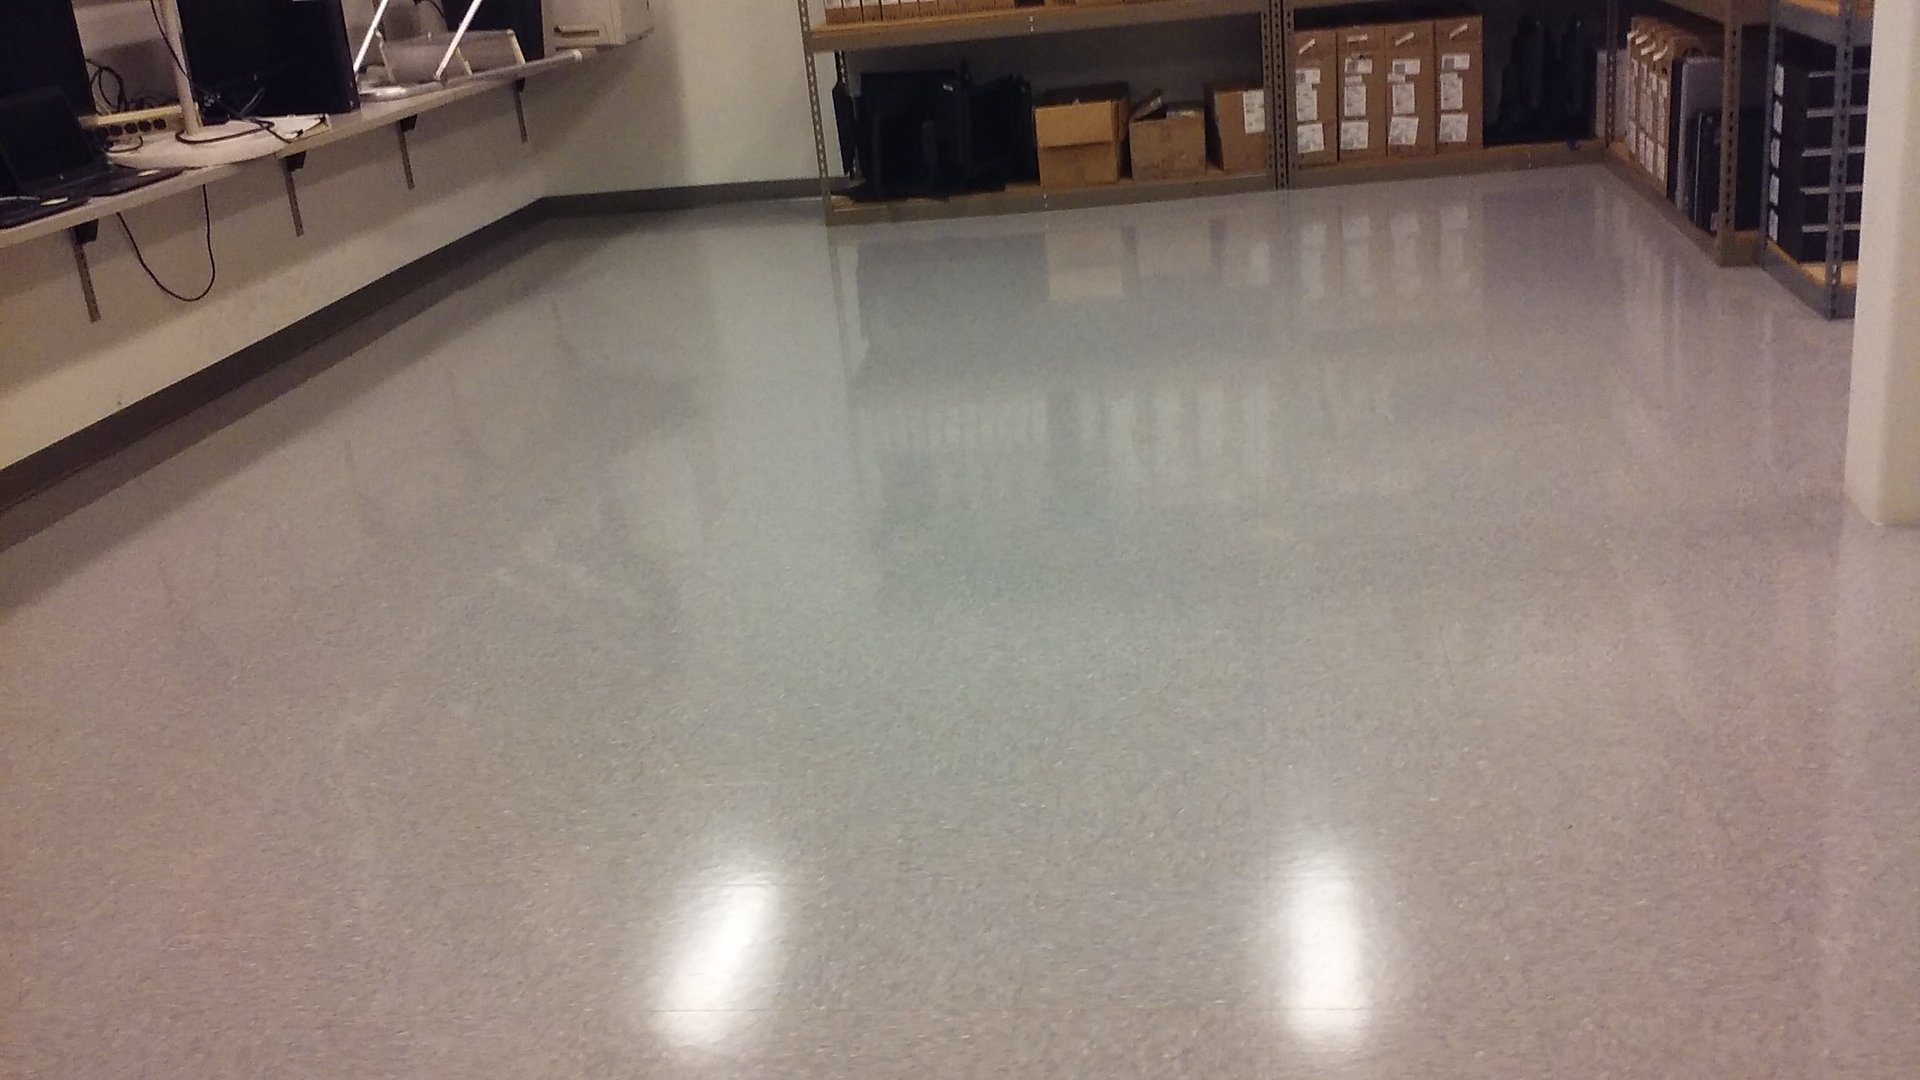 After floor cleaning task